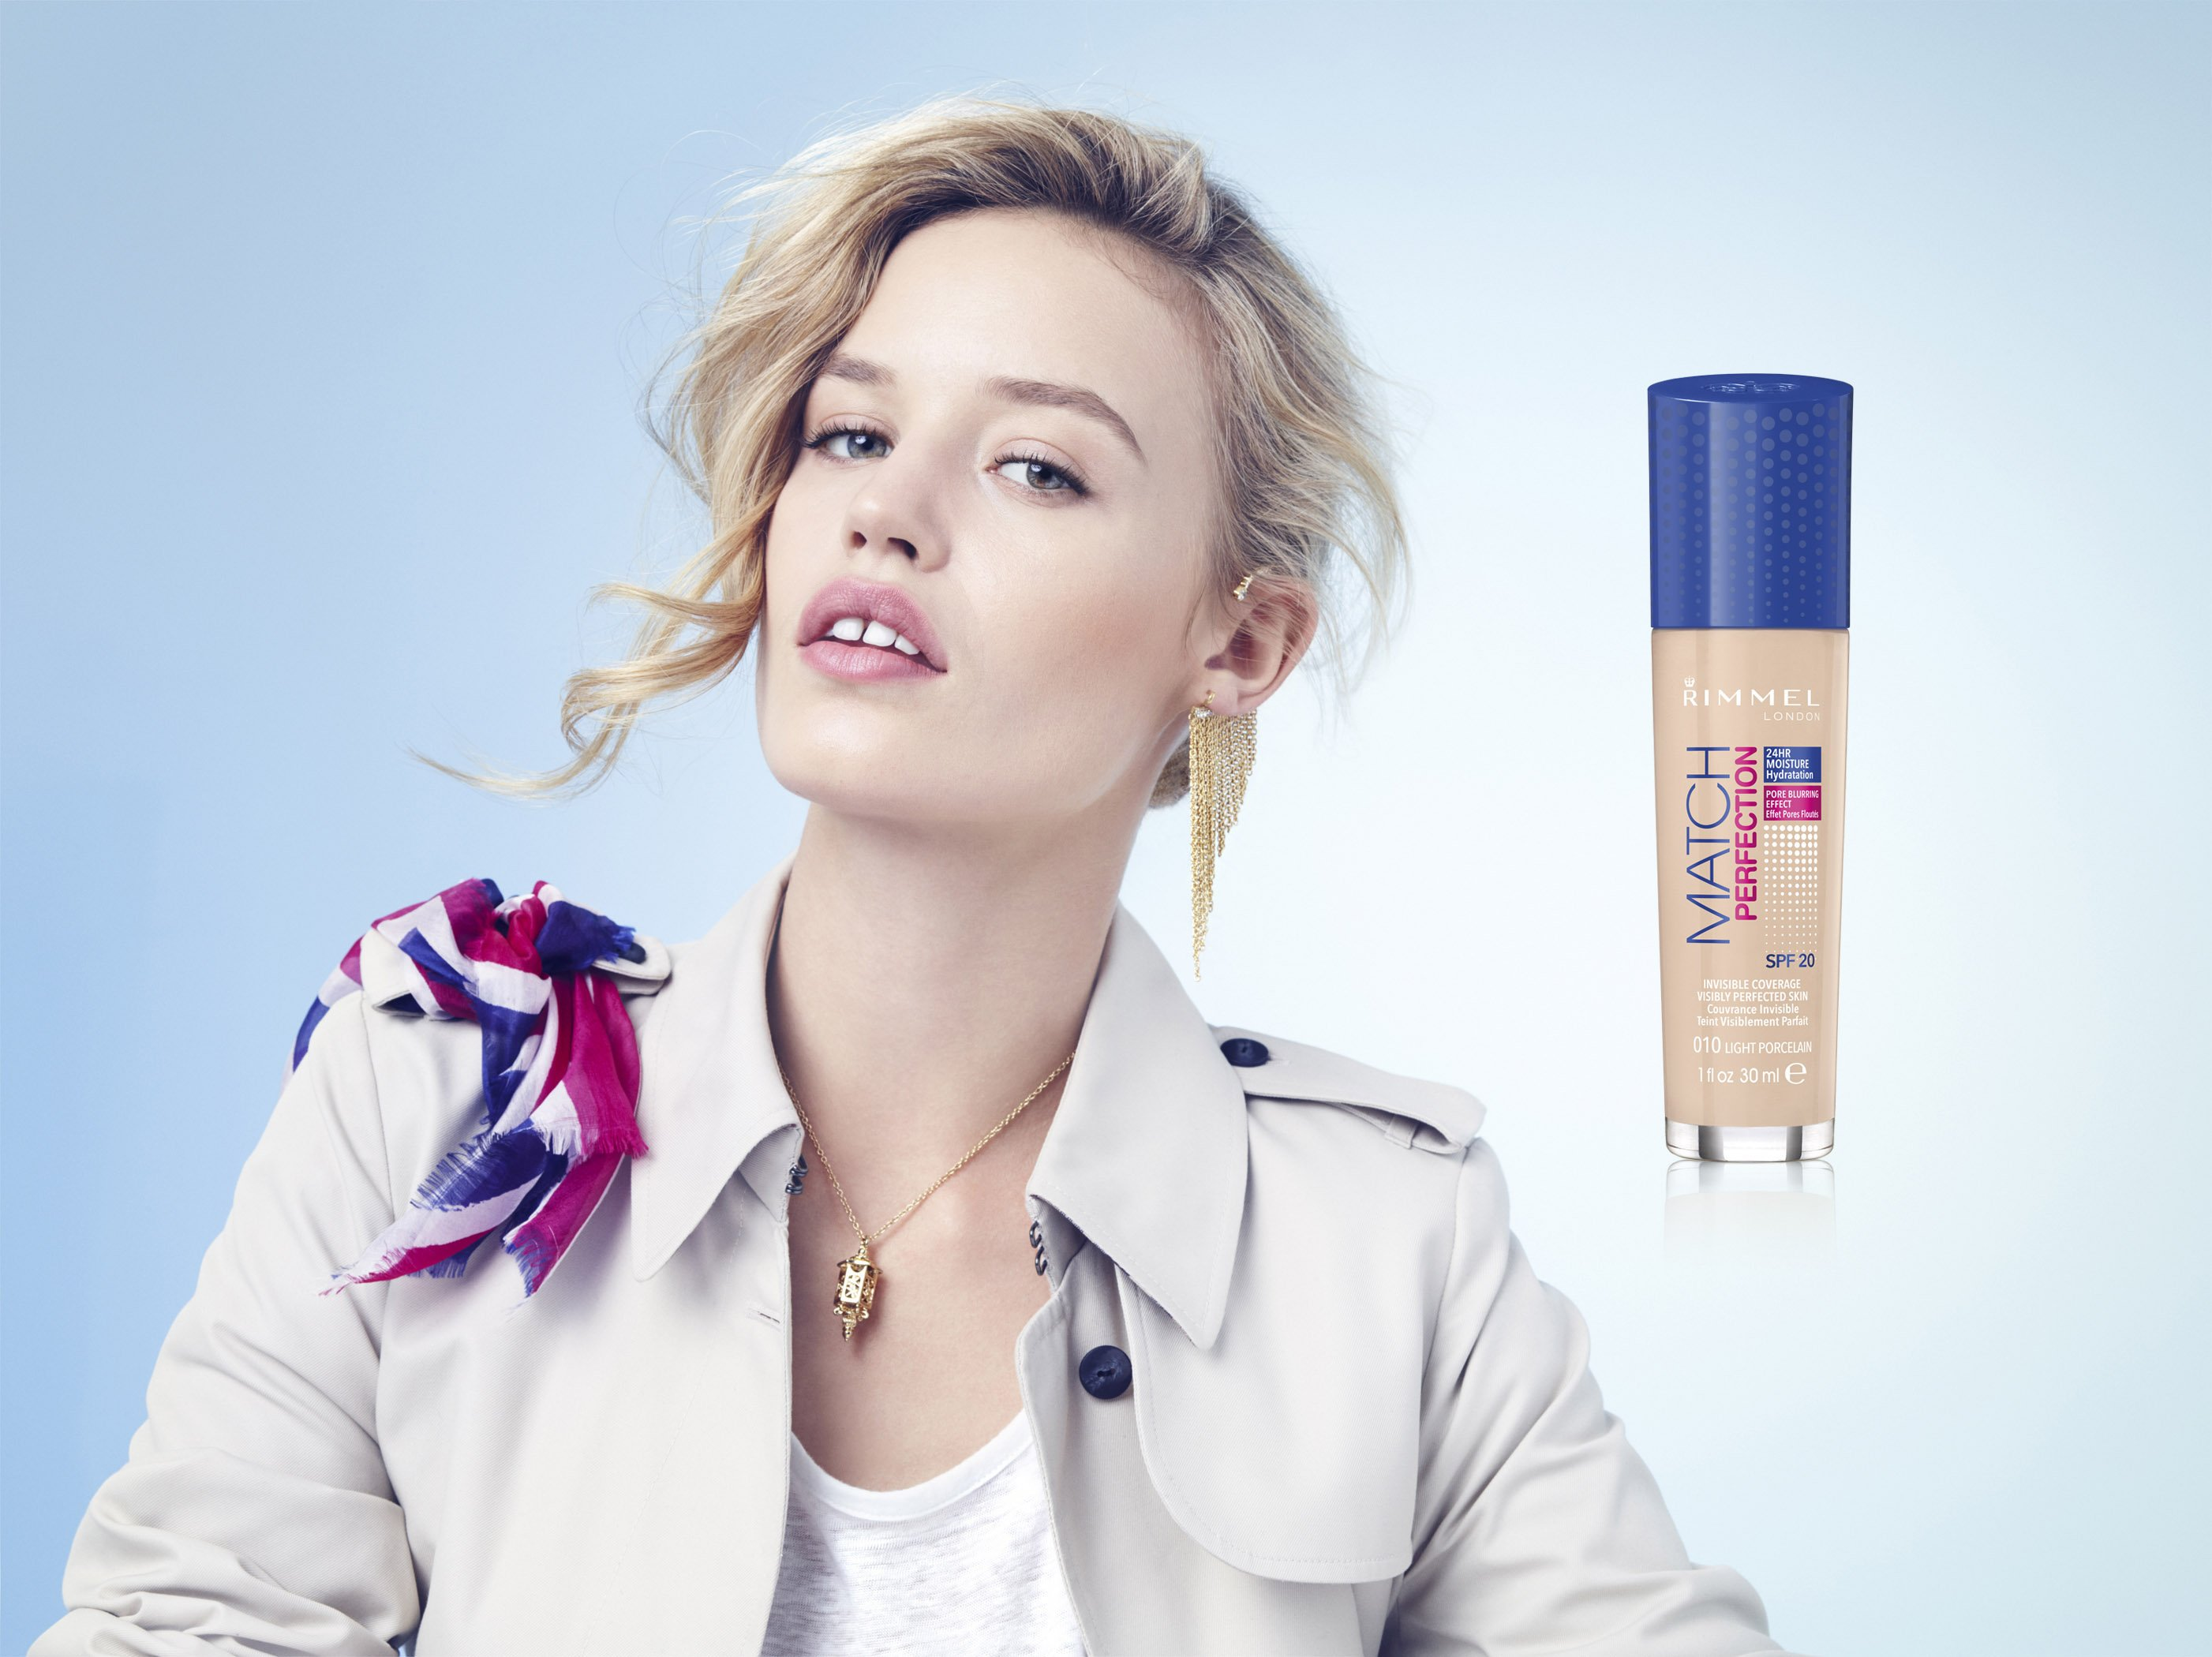 Rimmel's New Match Perfection Foundation & Fix & Protect Primer With SPF